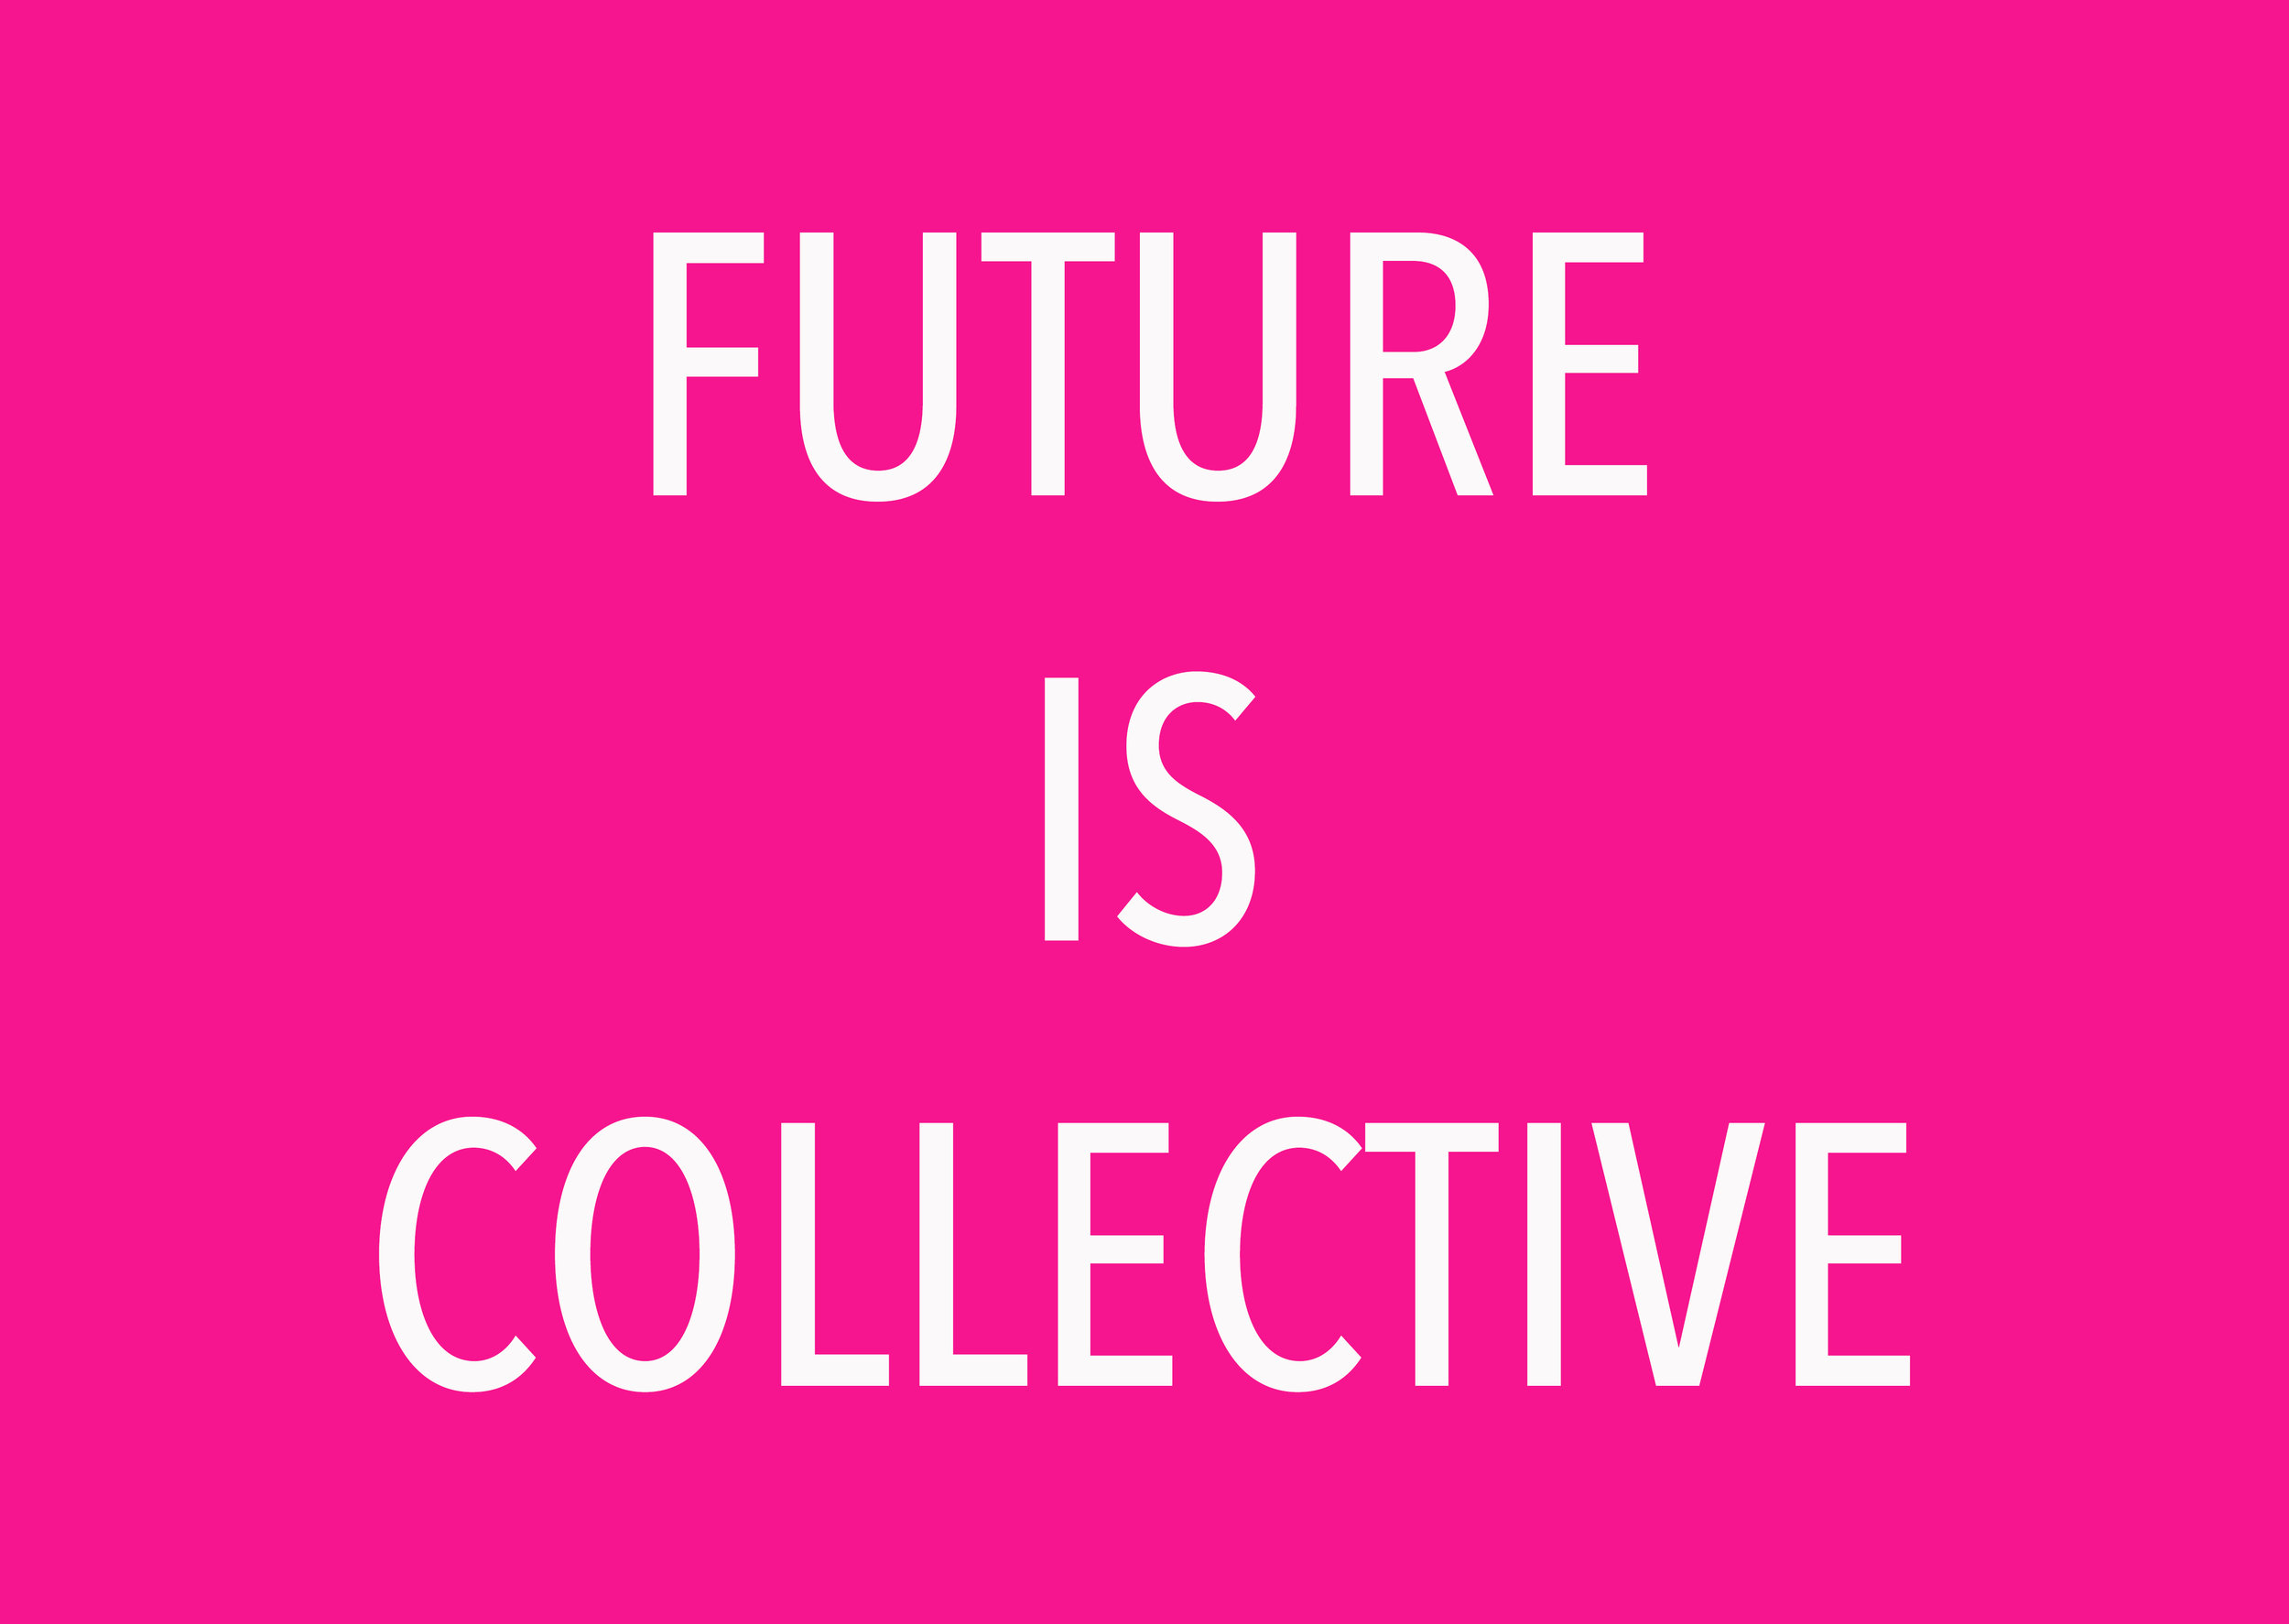 future is collective-recto.jpg